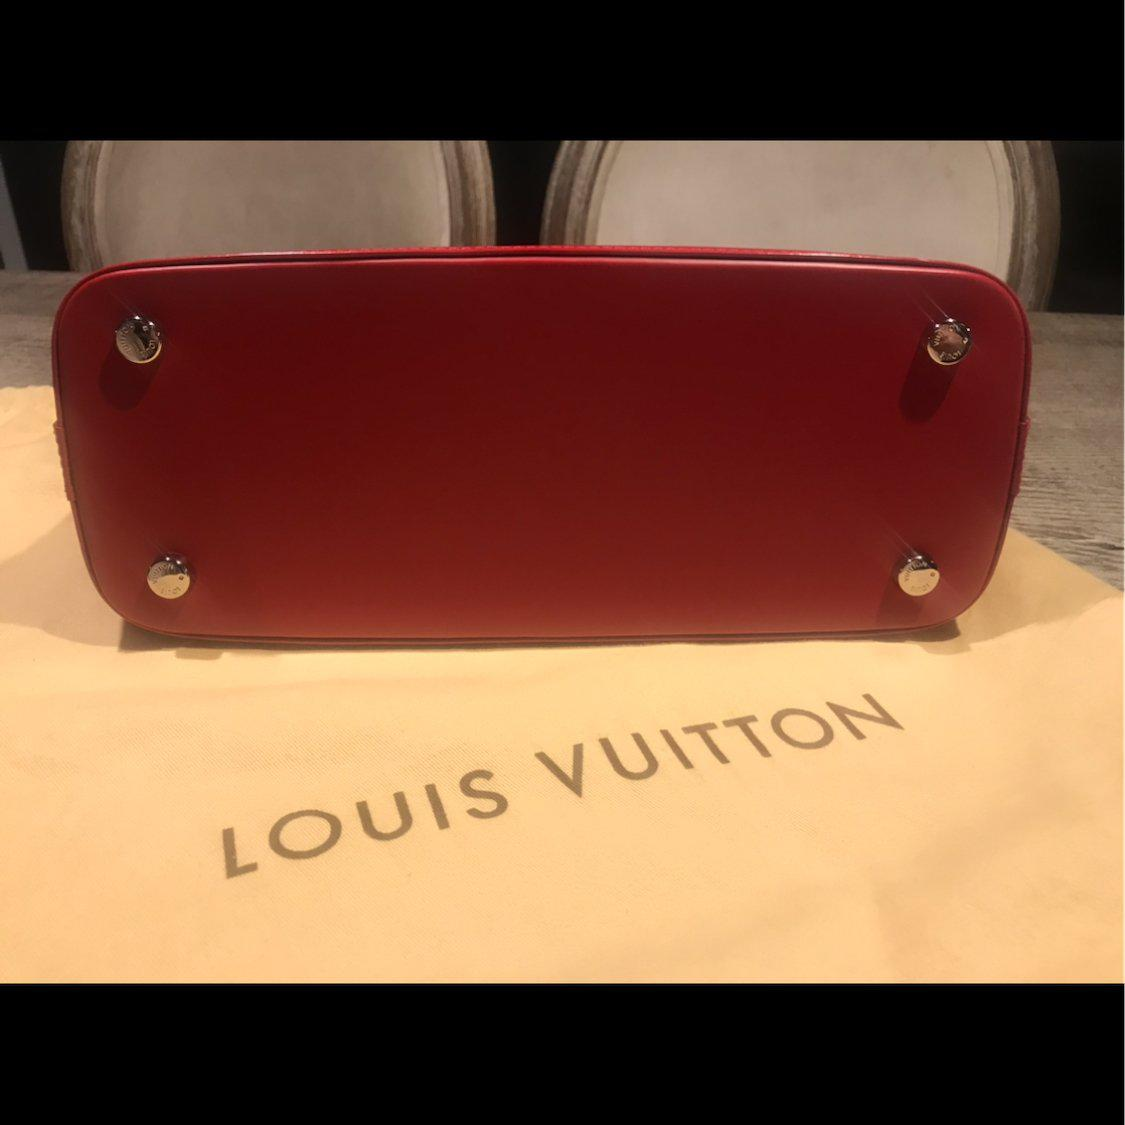 Louis Vuitton Mirabeau PM